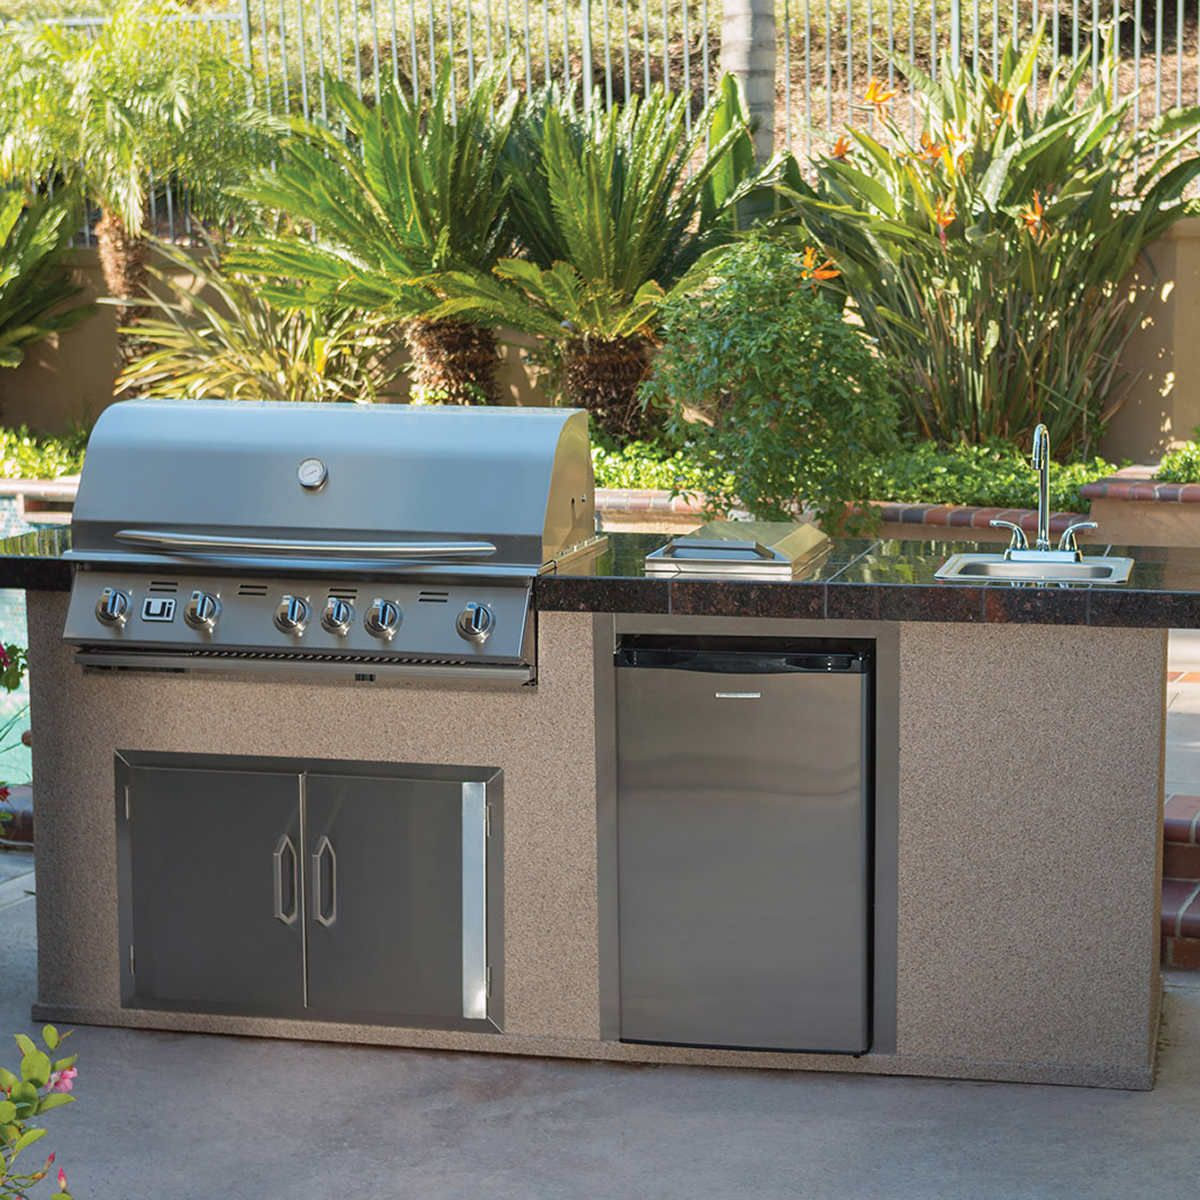 Urban Islands Stainless Steel 38 5 Burner Drop In Grill In 2021 Outdoor Kitchen Patio Small Outdoor Kitchens Outdoor Kitchen Grill